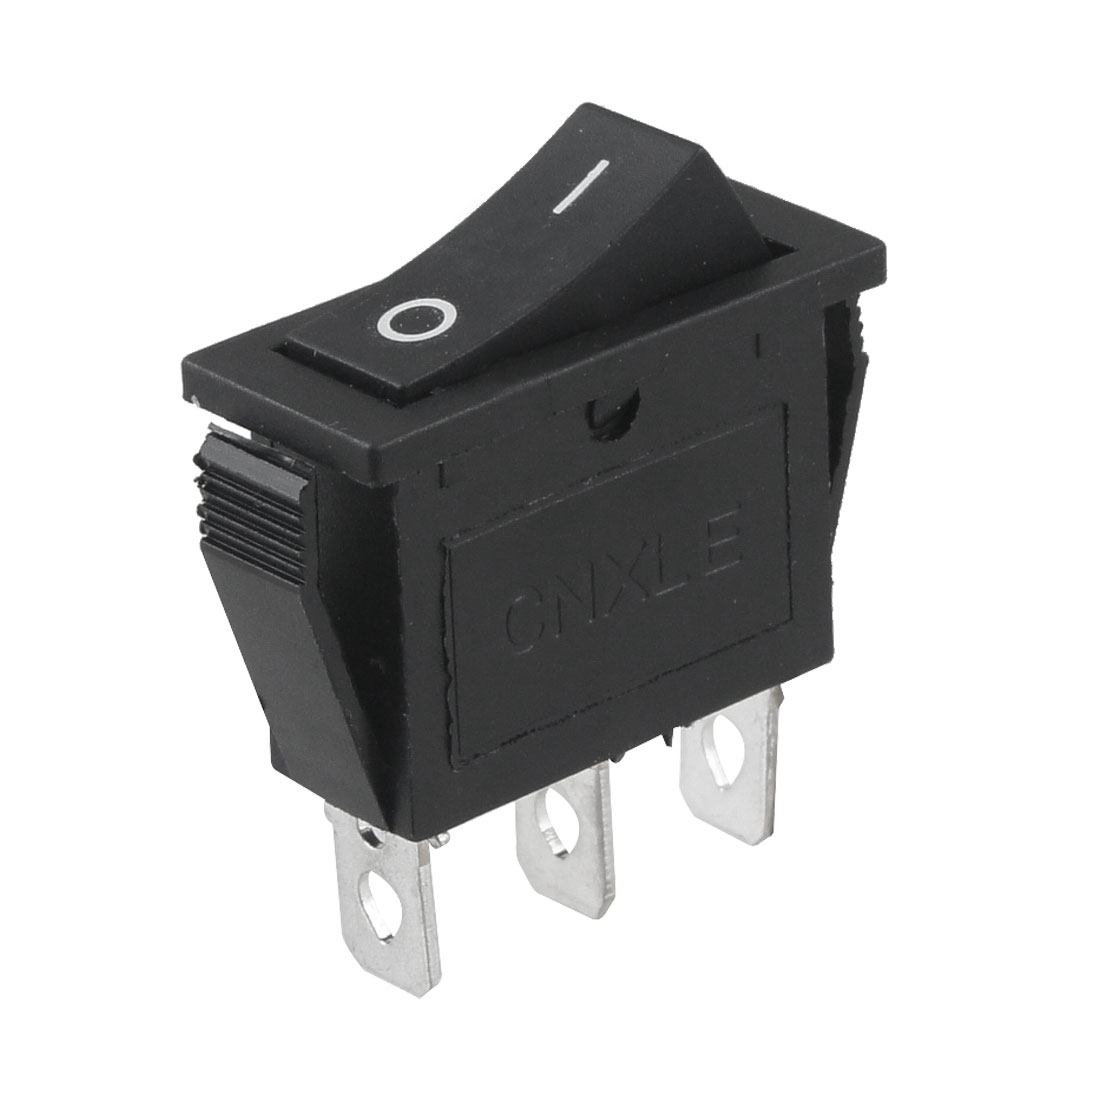 KCD3 AC 250V 15A SPDT 3 Pin ON/OFF ON-OFF Rocker Boat Switch